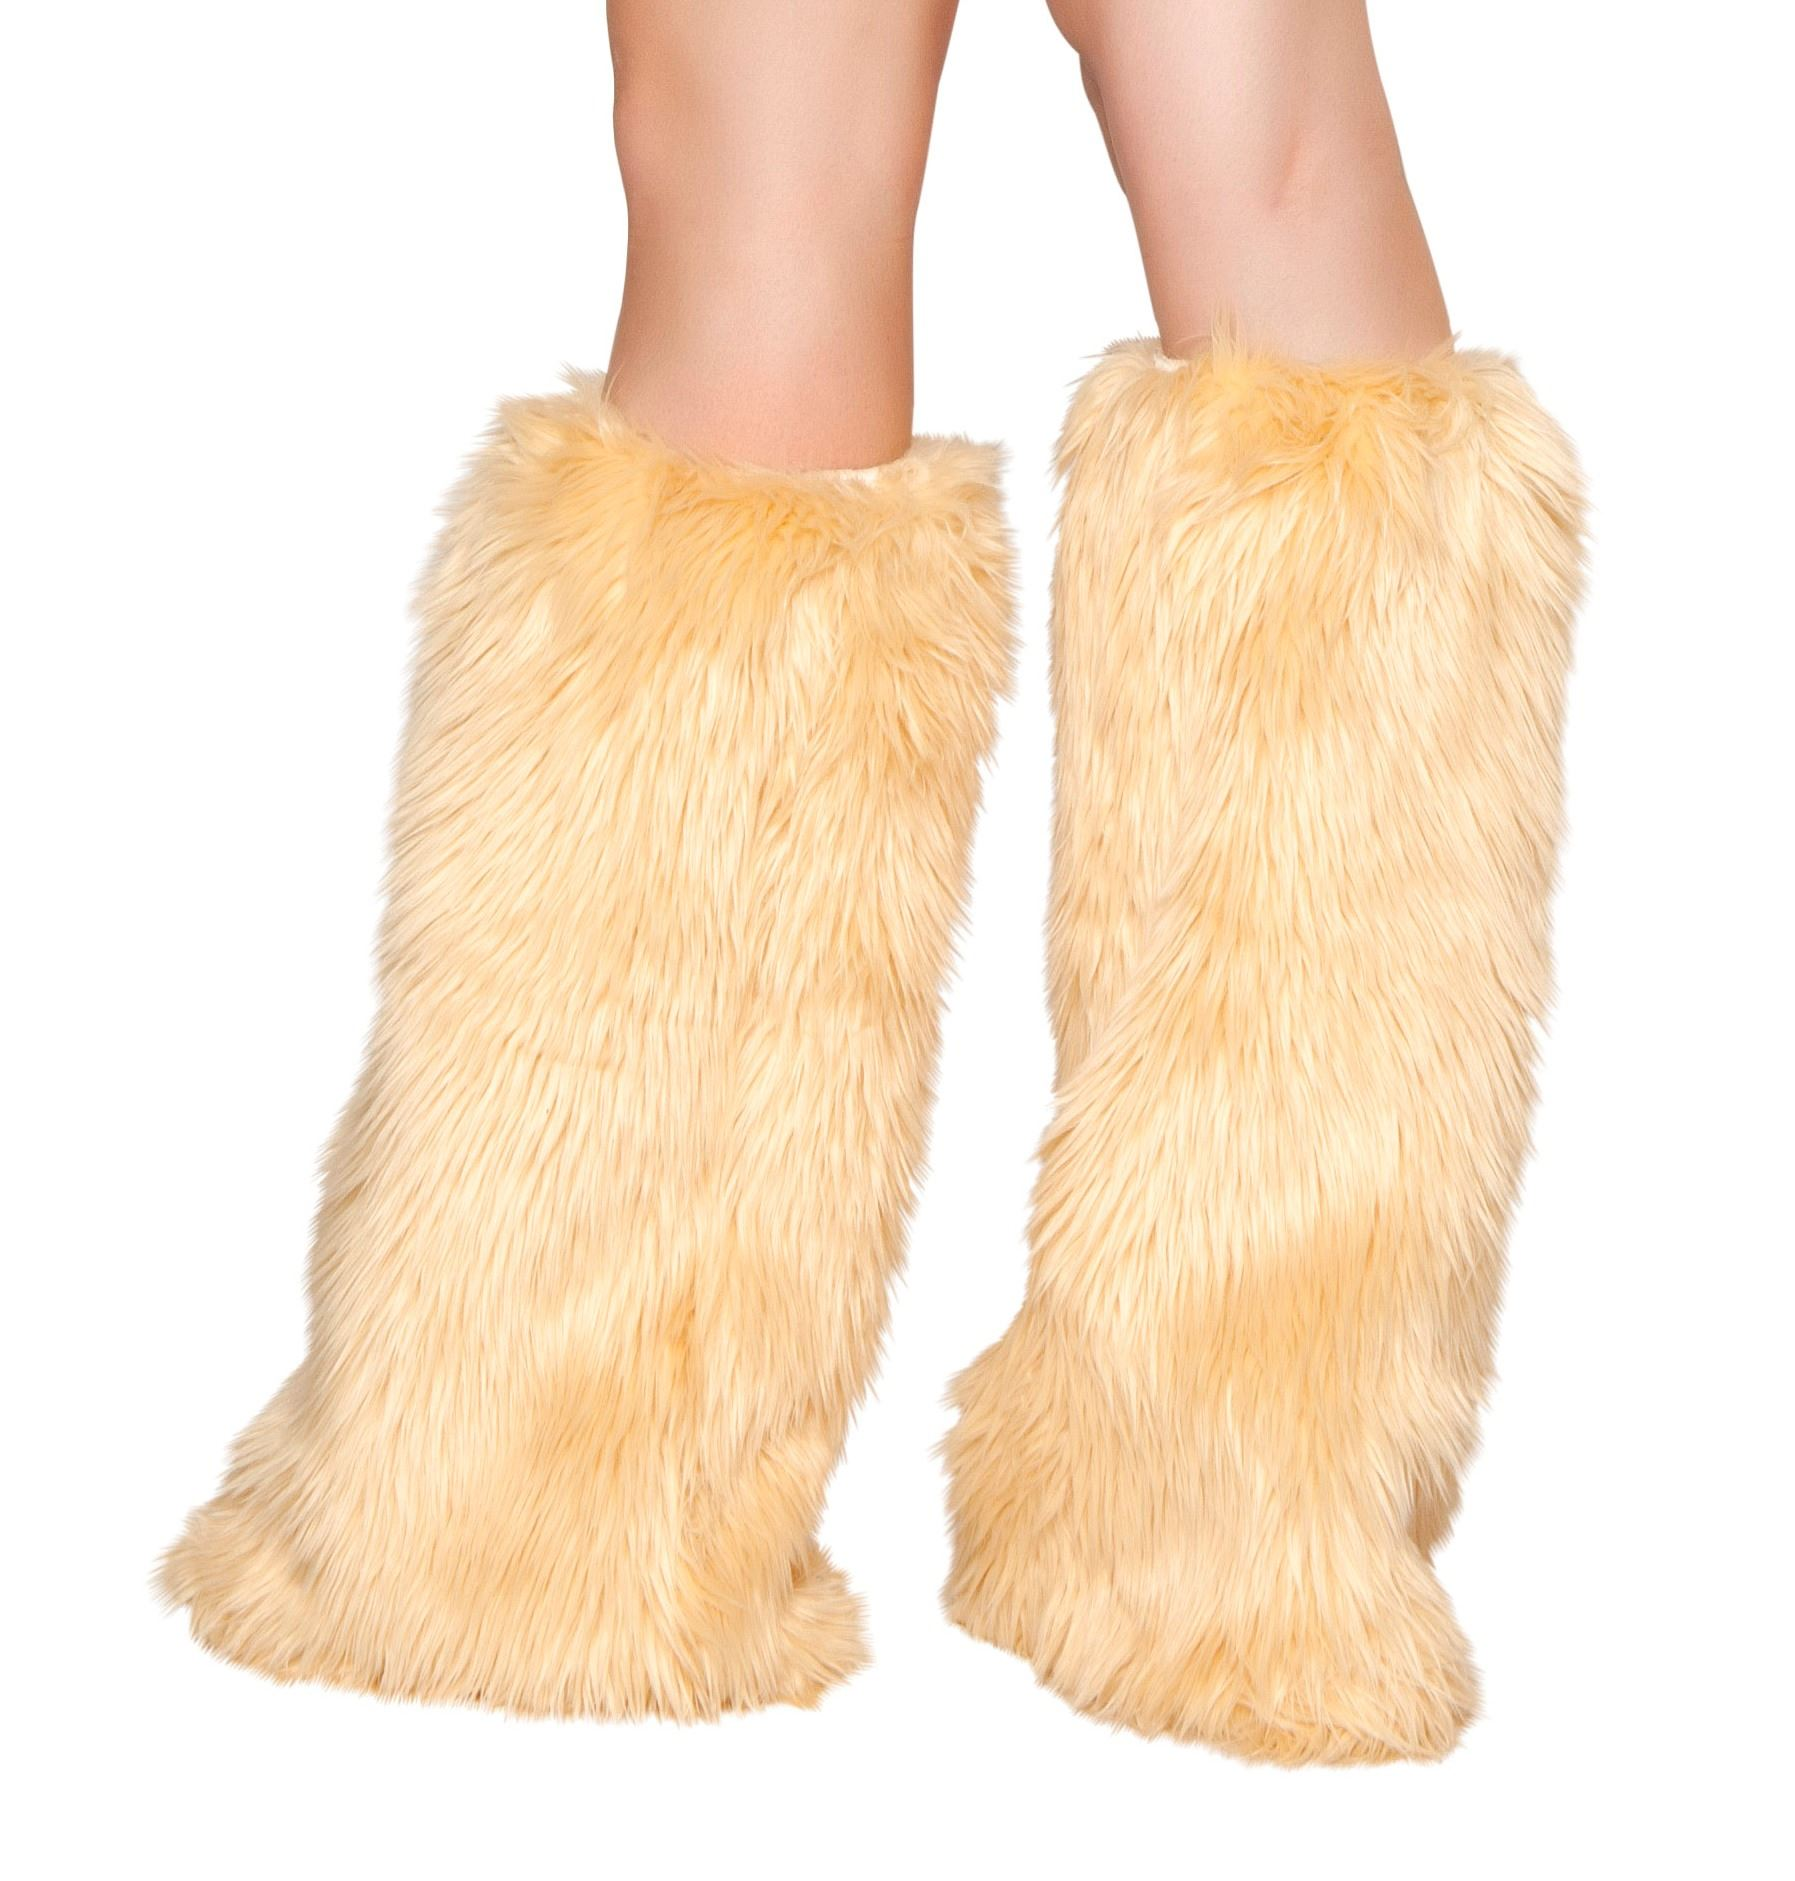 Adult Deluxe Fur Leg Warmer | $28.99 | The Costume Land